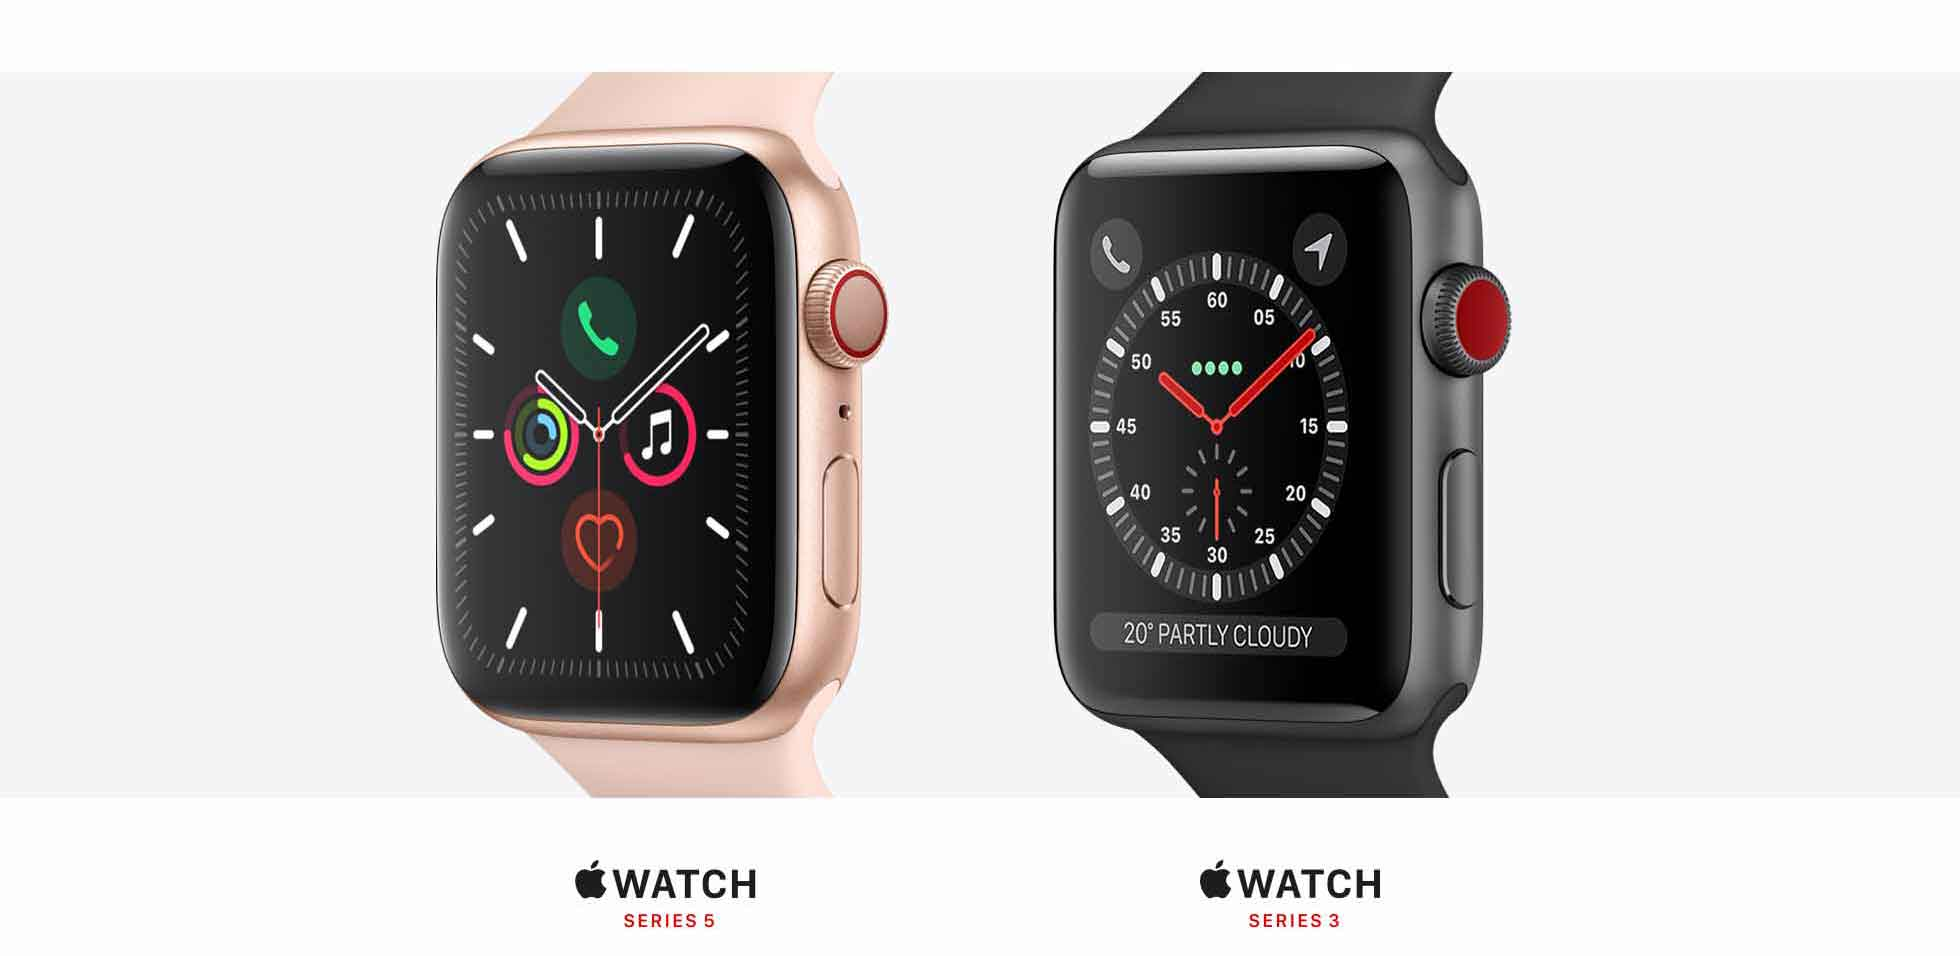 Apple watch series 3 and 5